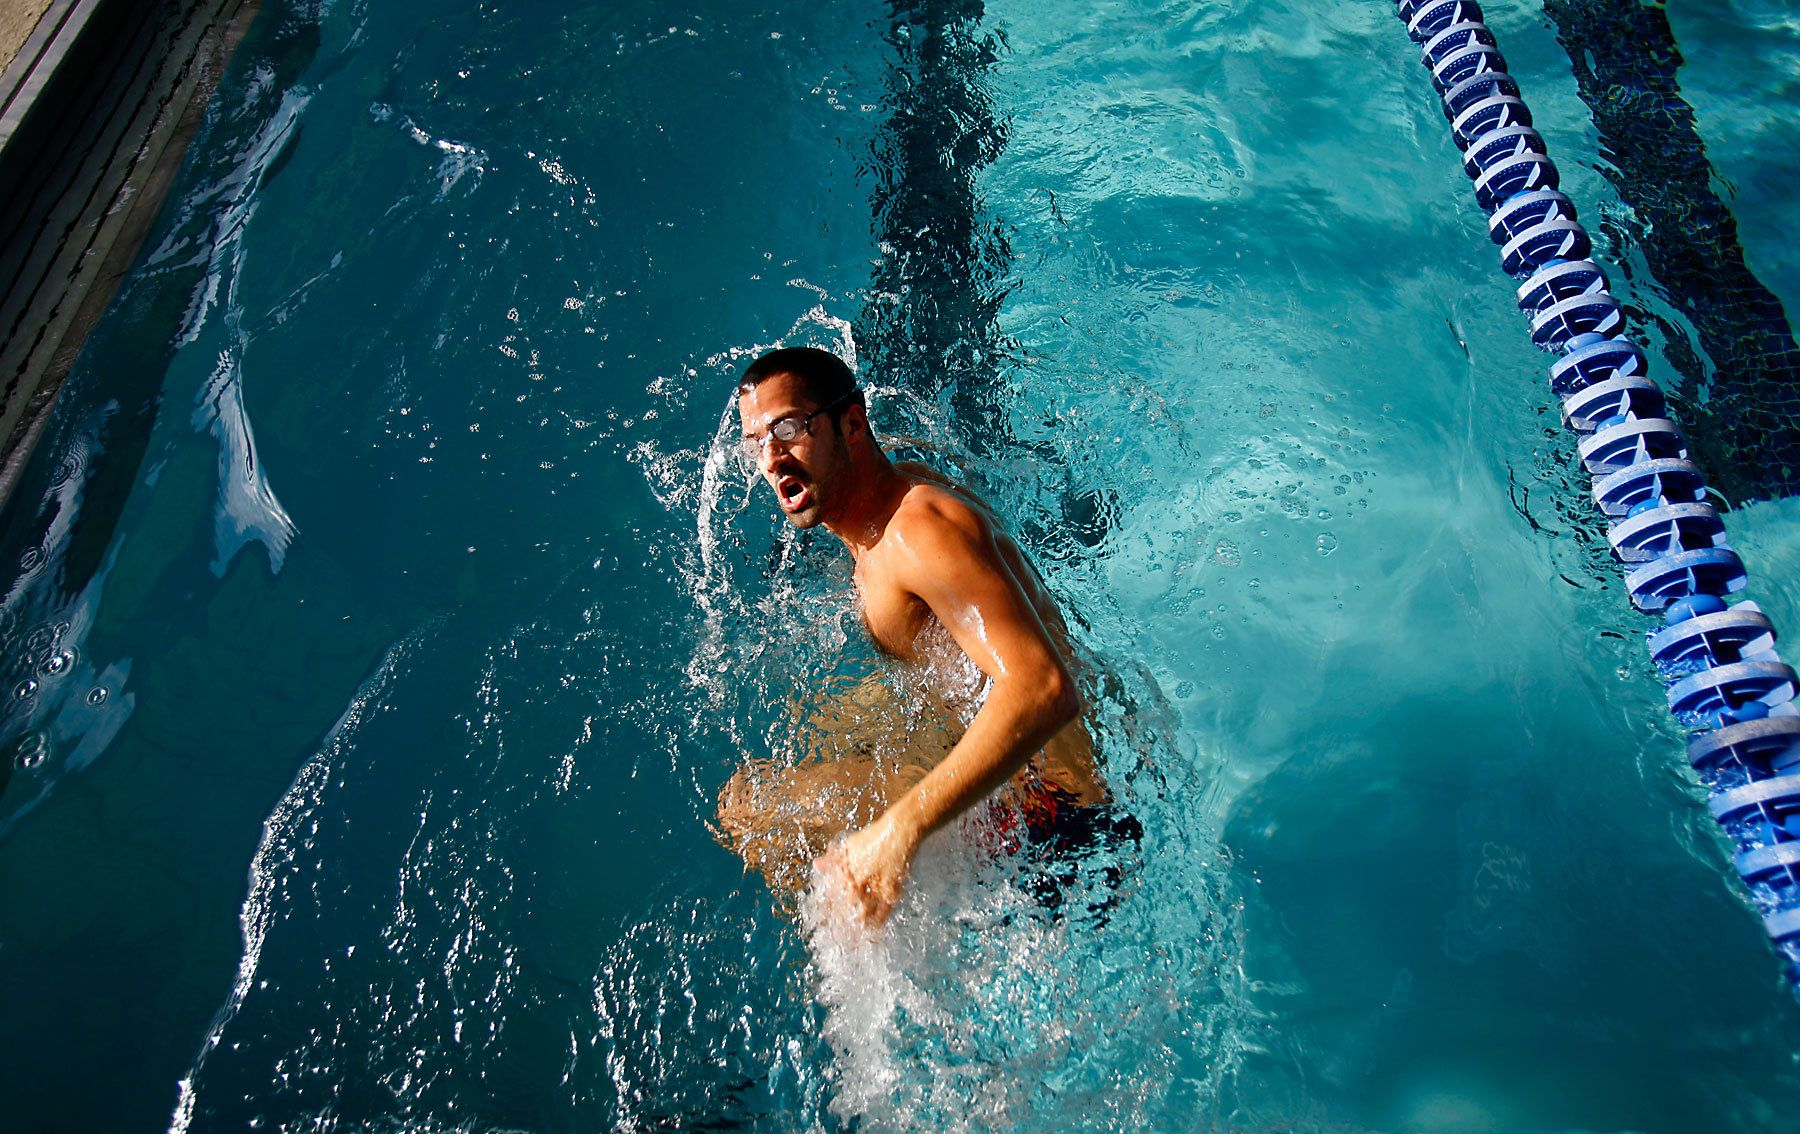 Myrtle Beach swimmer Gus Calado gets a workout Tuesday afternoon at Pepper Geddings Recreation Center in Myrtle Beach. The former Virginia Tech swimmer and current Coastal Aquatic Club assistant coach will compete this weekend at the Missouri Grand Prix.